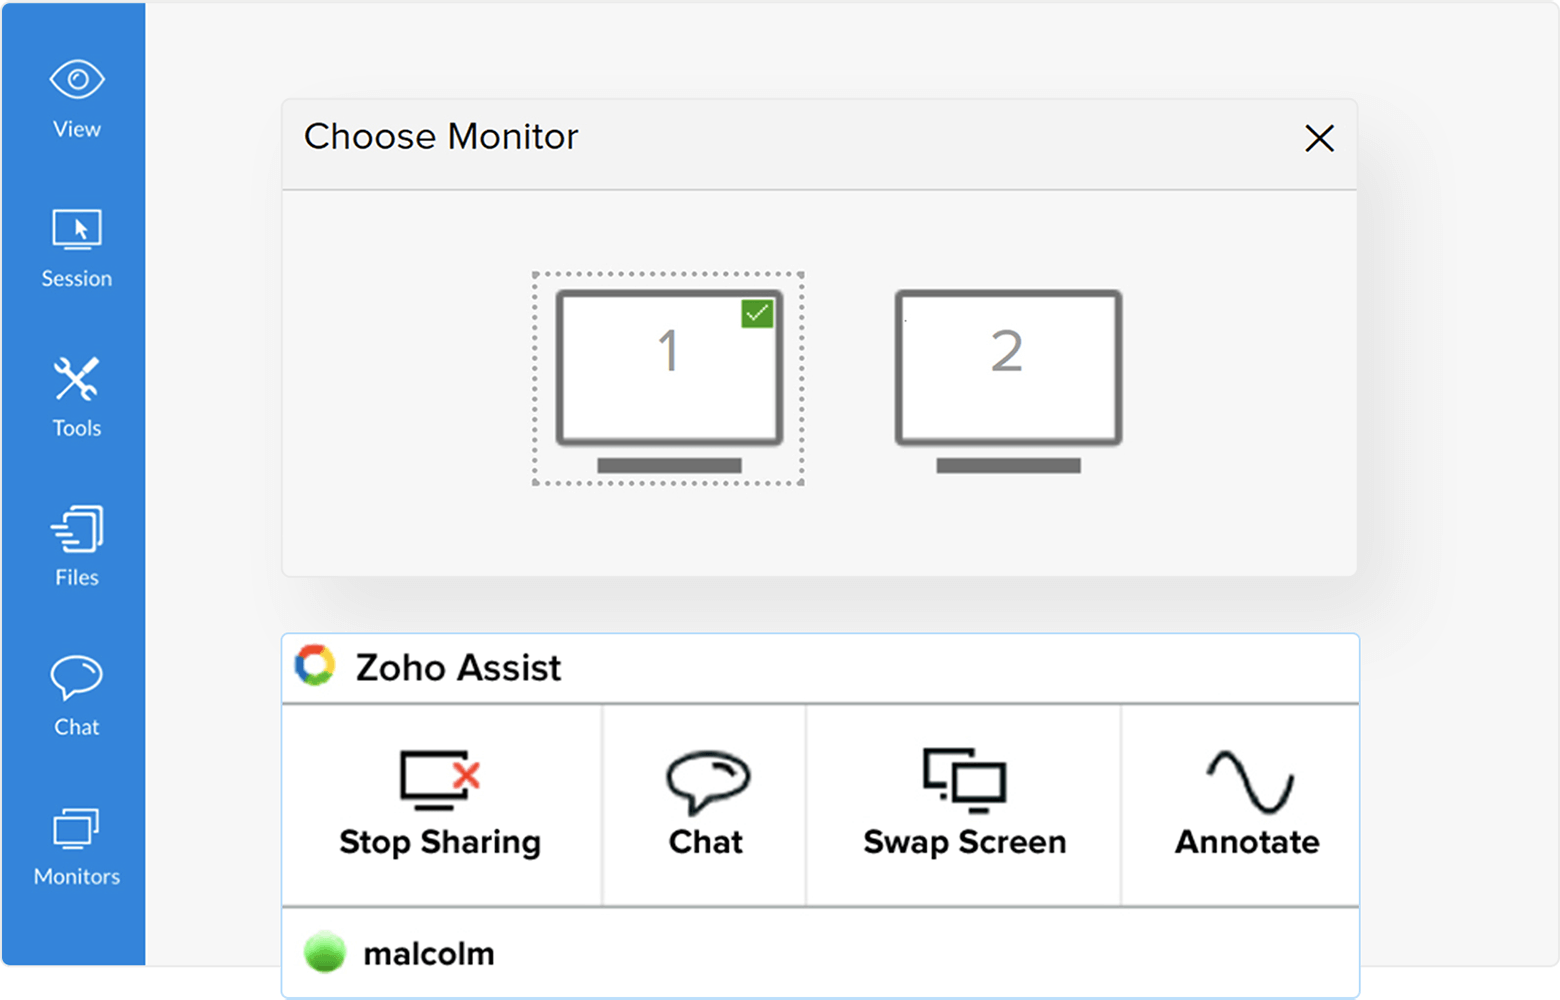 Mac remote desktop solution with multi monitor feature - Zoho Assist